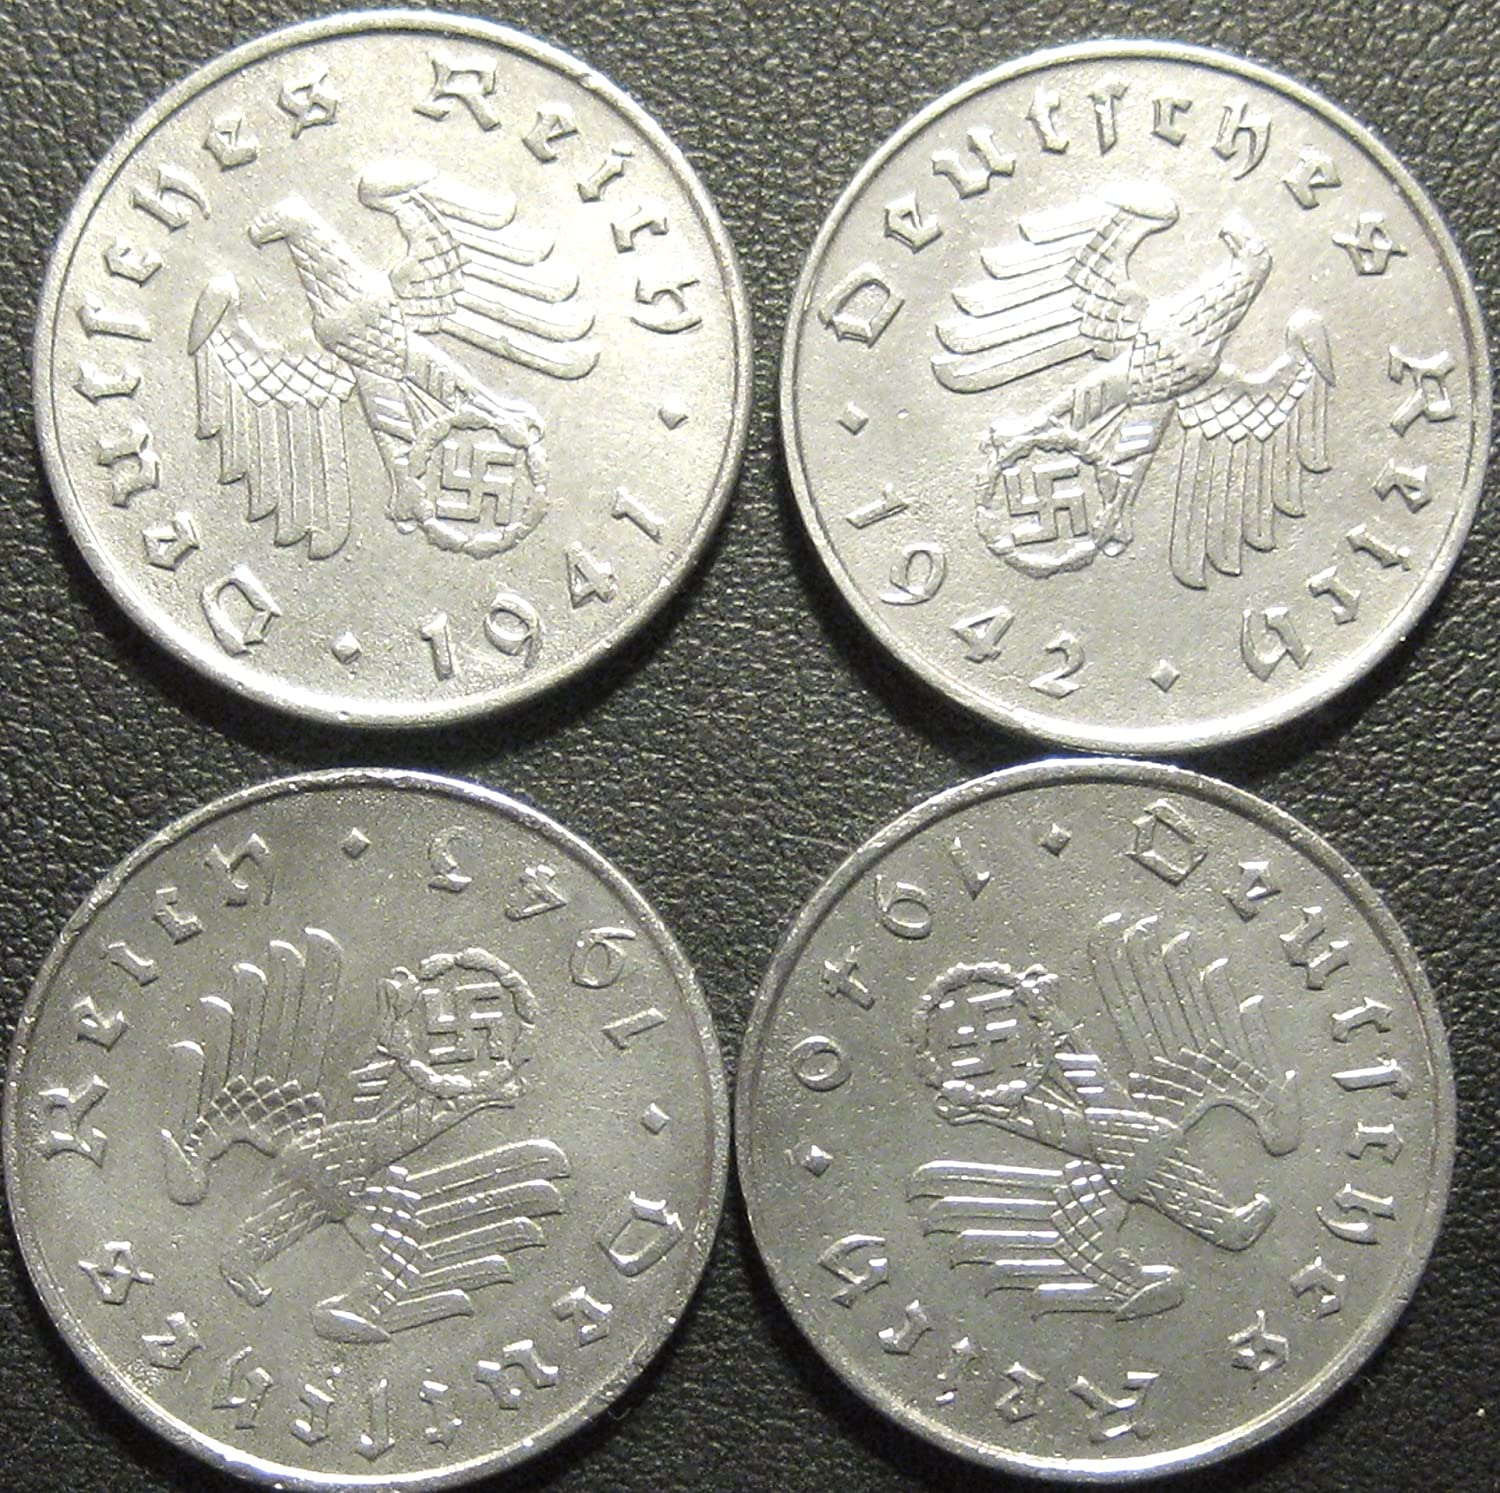 Germany, Four World War II German 10 Reichspfennig Coin Collection - Dated 1940, 1941, 1942 &1943